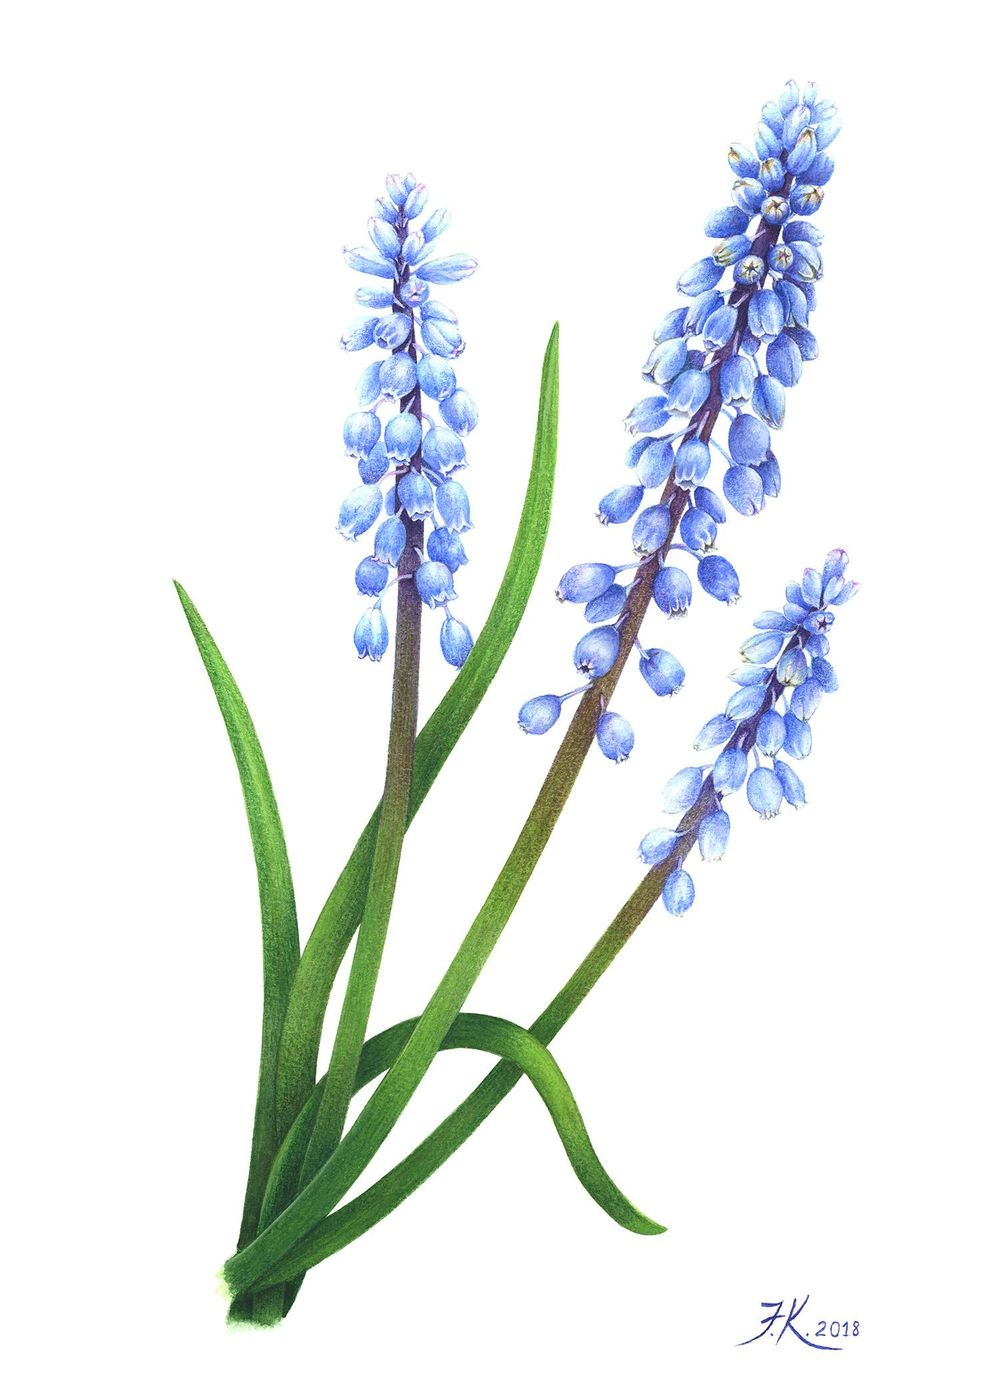 Vintage-Inspired grape-hyacinth - image 4 - student project